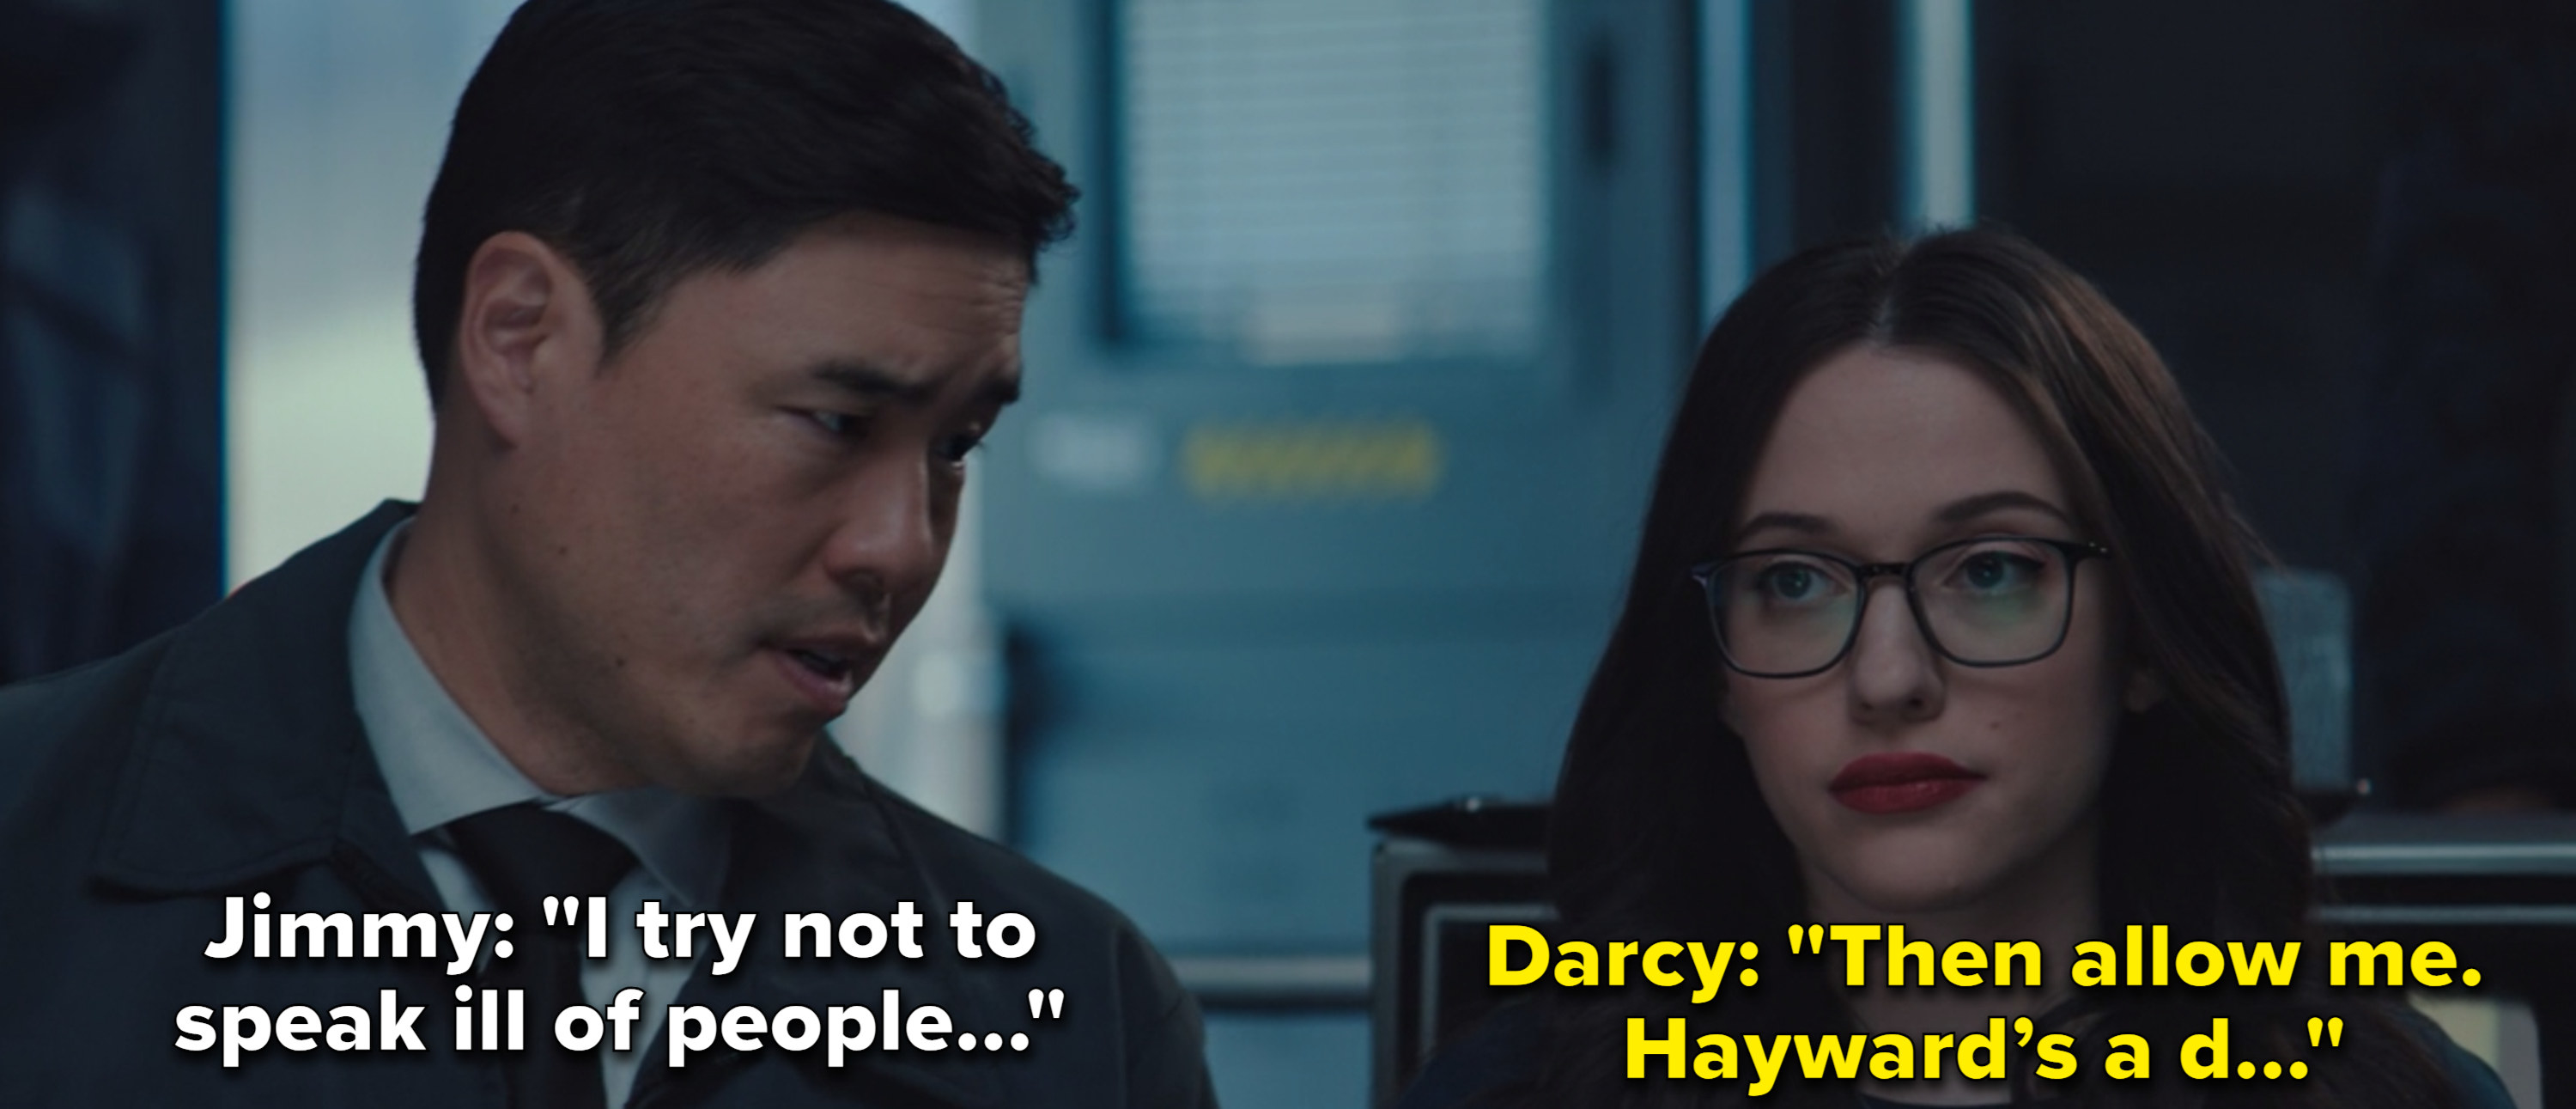 """Jimmy Woo leans to whisper to Darcy Lewis as they stand in for their military briefing and he said, """"I try not to speak ill of people."""" And Darcy responds, """"Then allow me. Hayward's a…"""""""